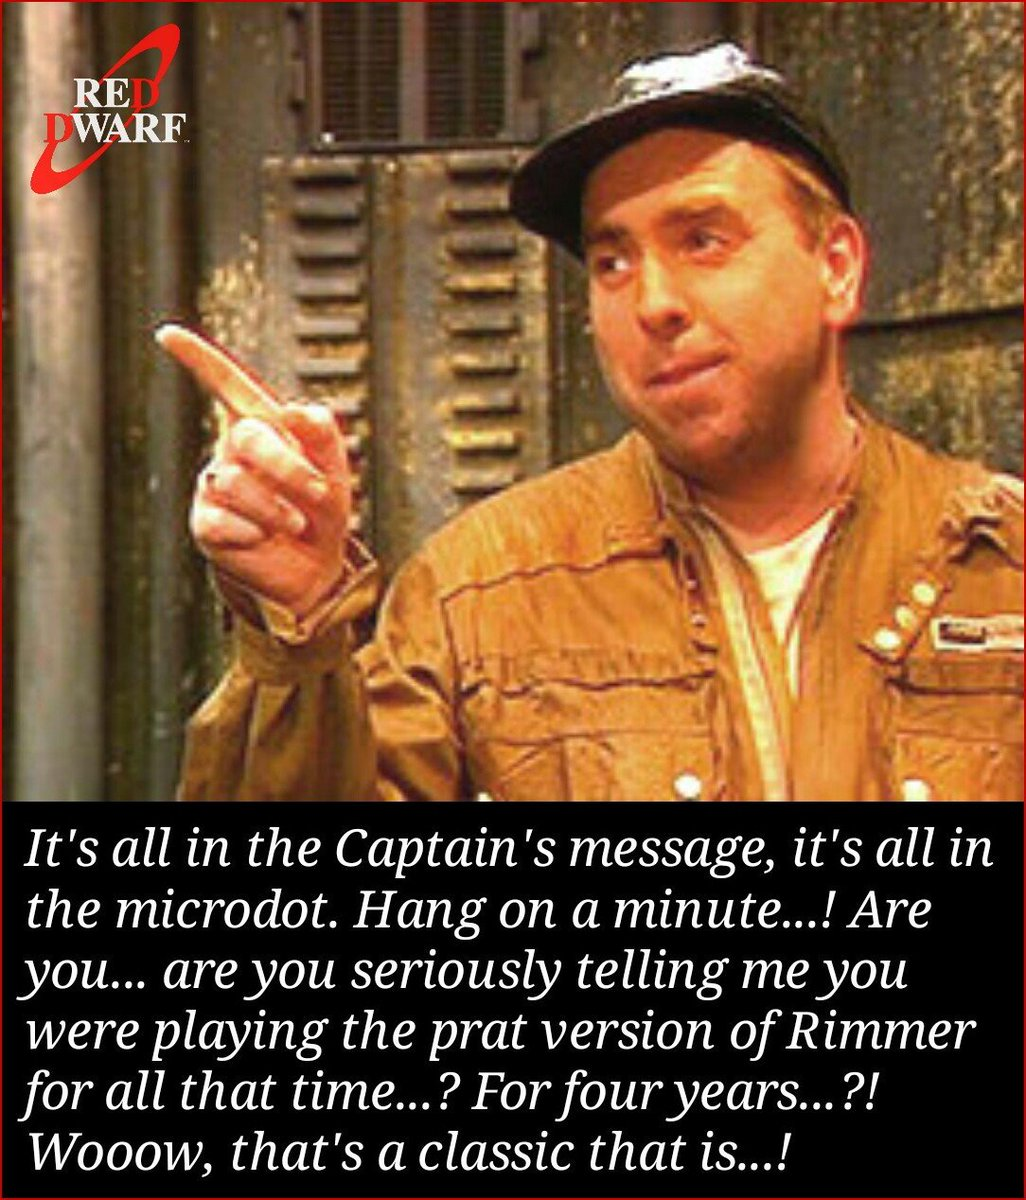 Red Dwarf all in the microdot